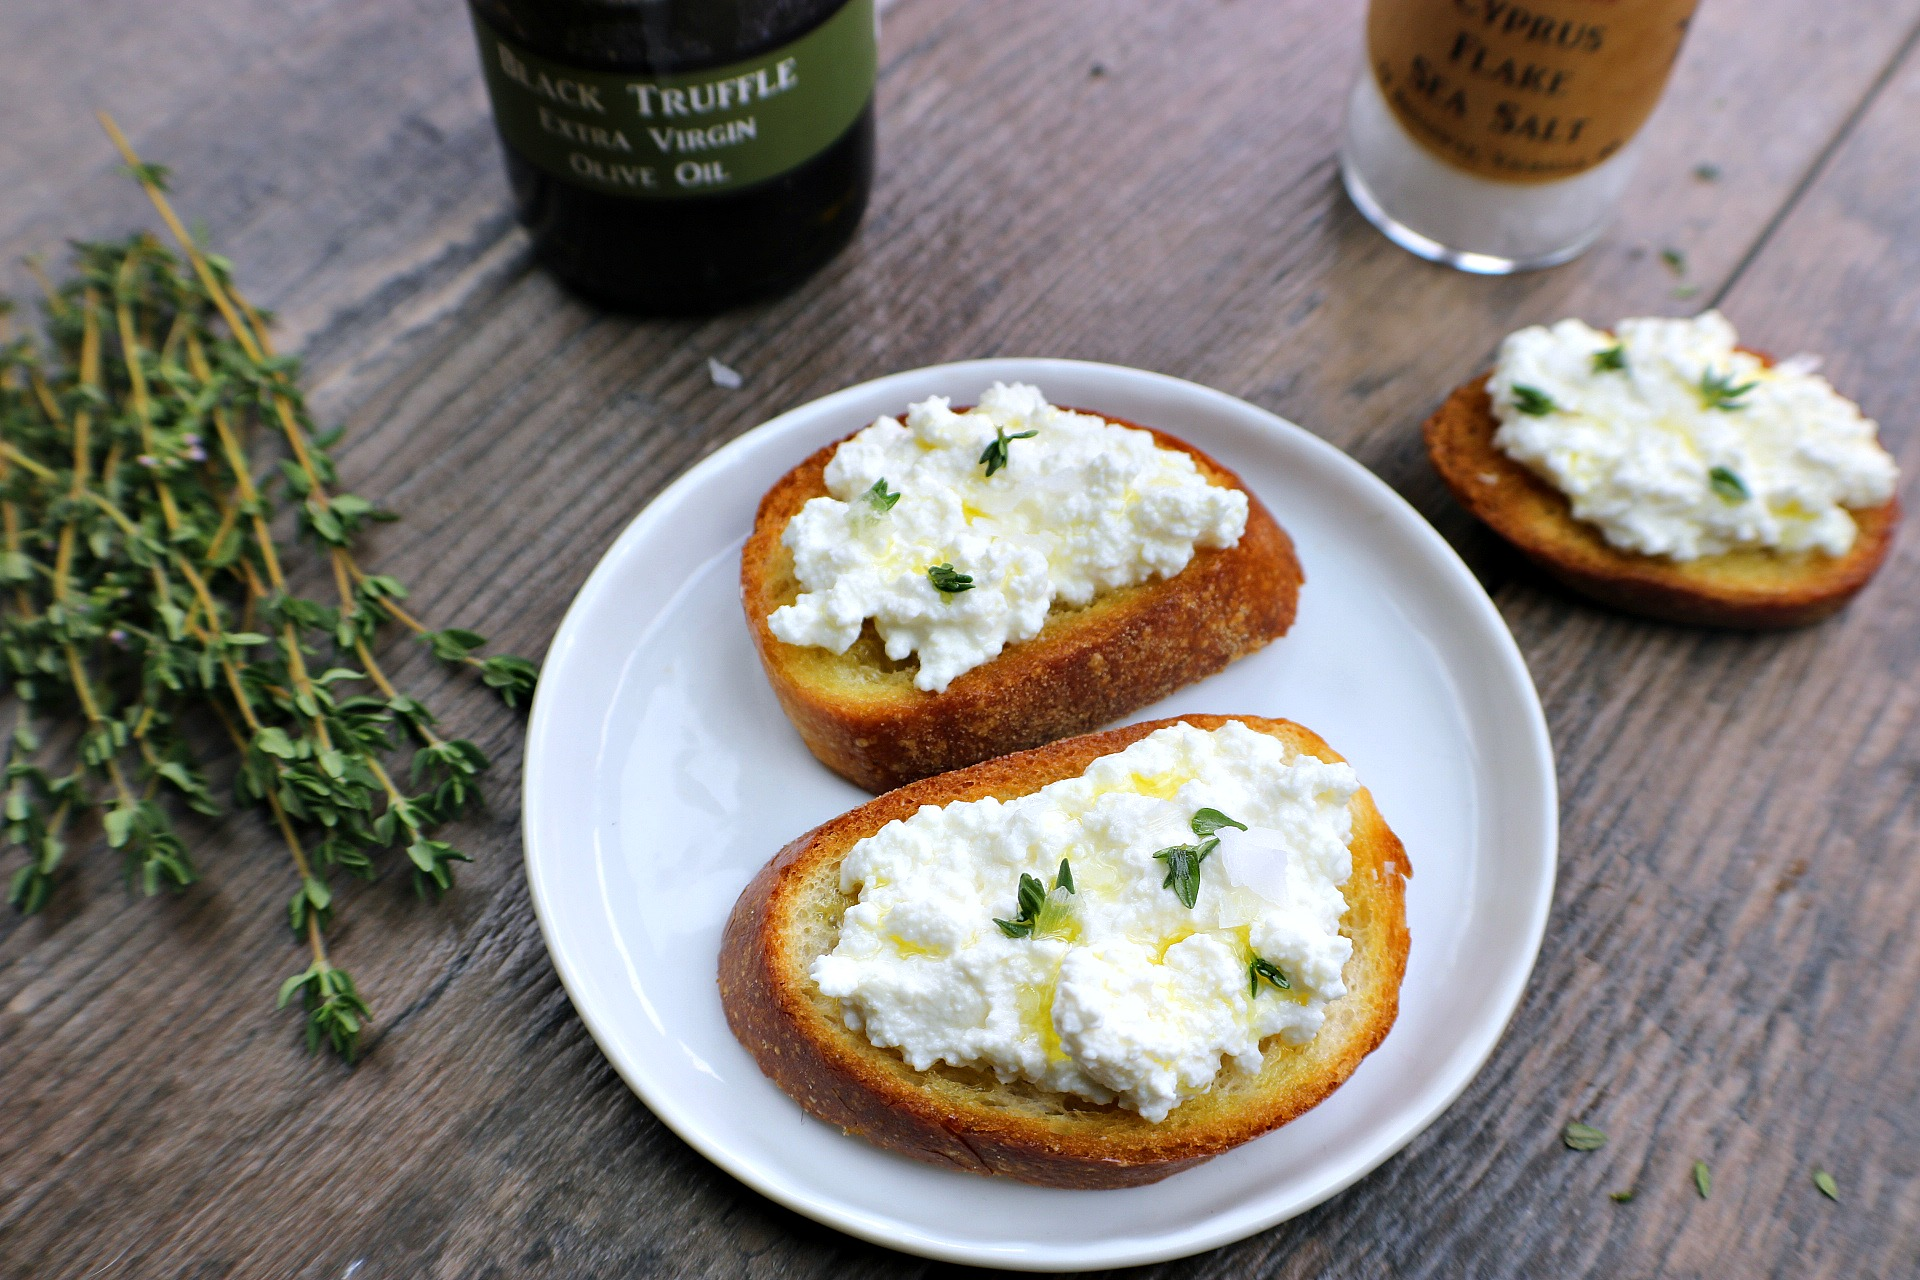 Easy and Delicious Black Truffle Crostini